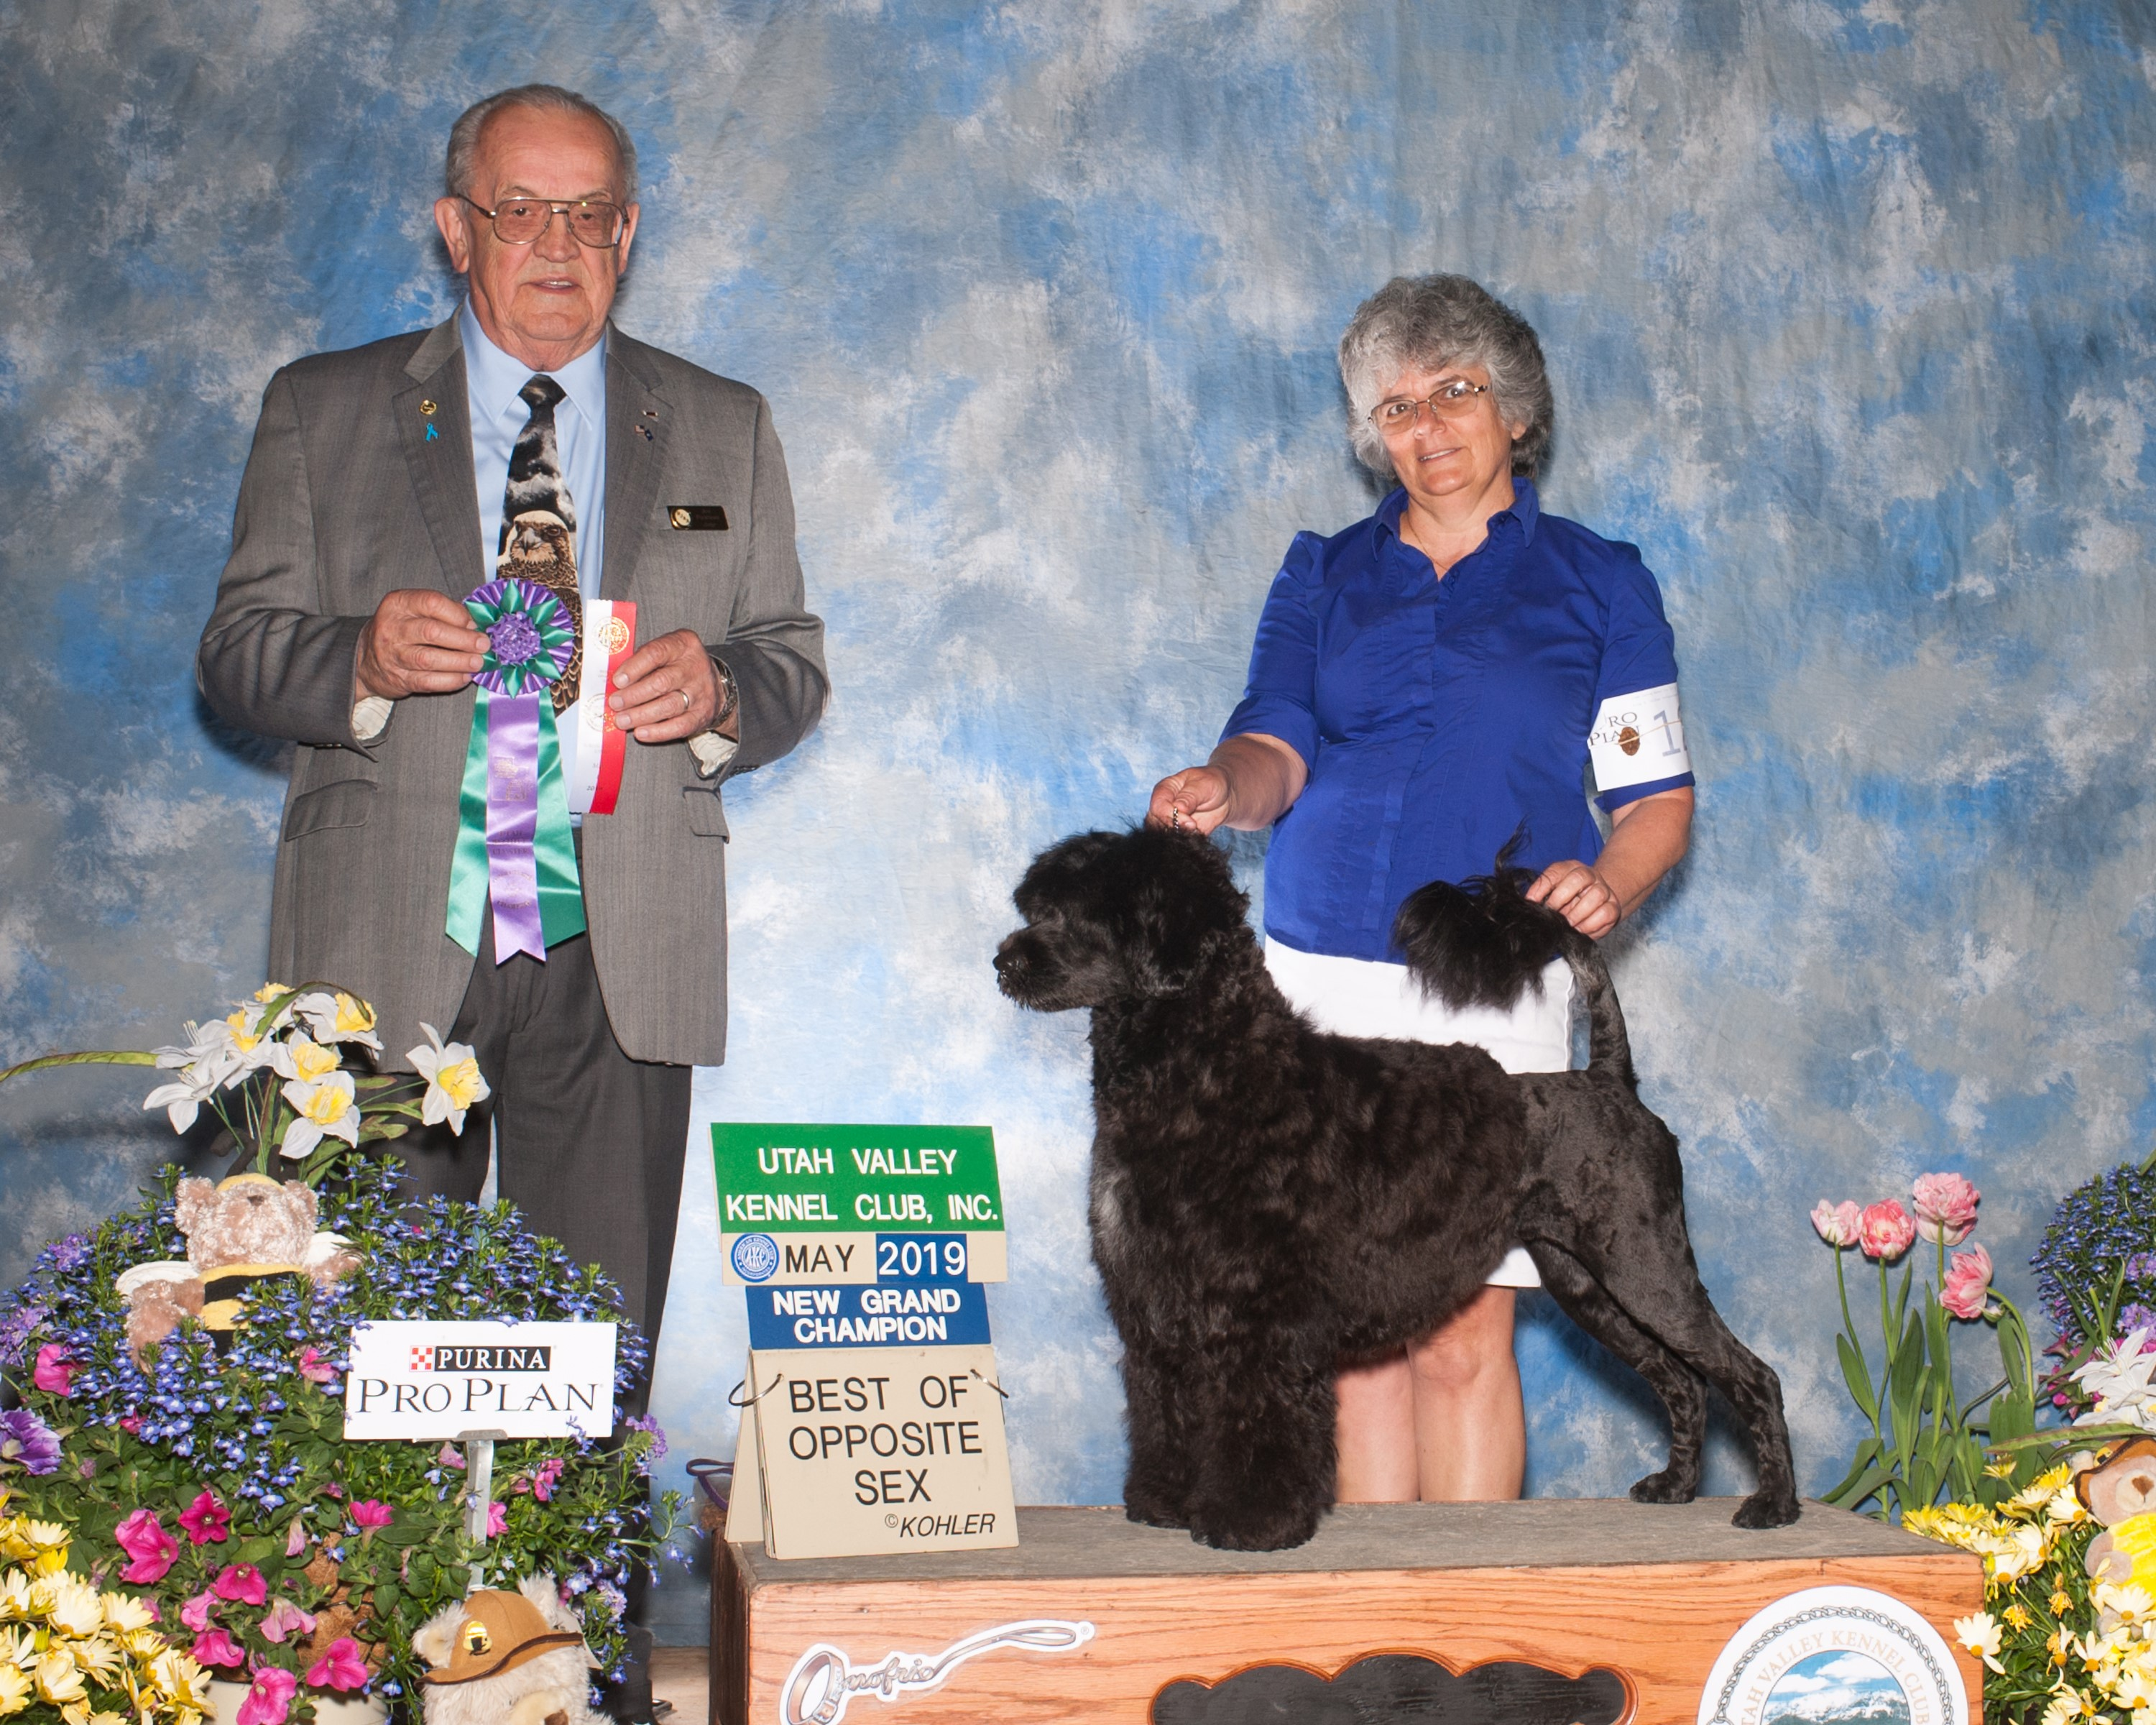 Dani with breeder, Becky Morin, and Judge holding winning ribbons